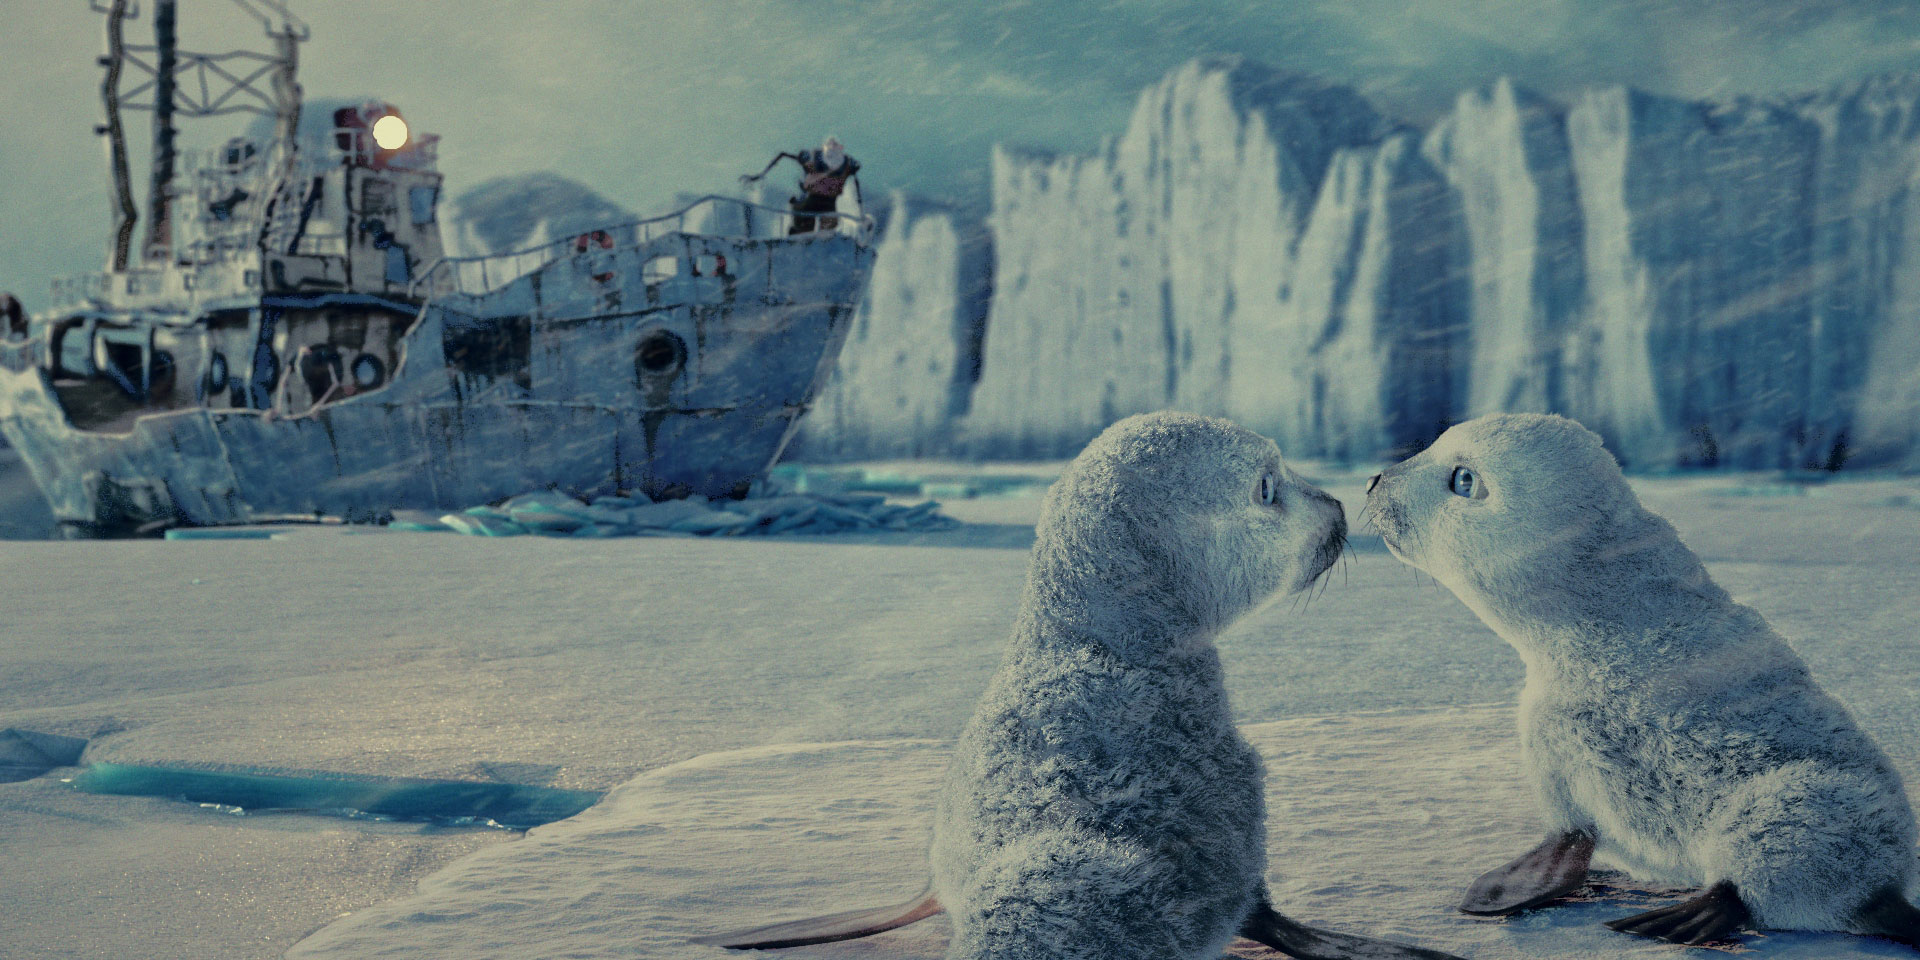 DDB New York's Animated 'Dream' is the Centerpiece of WCFF Festival